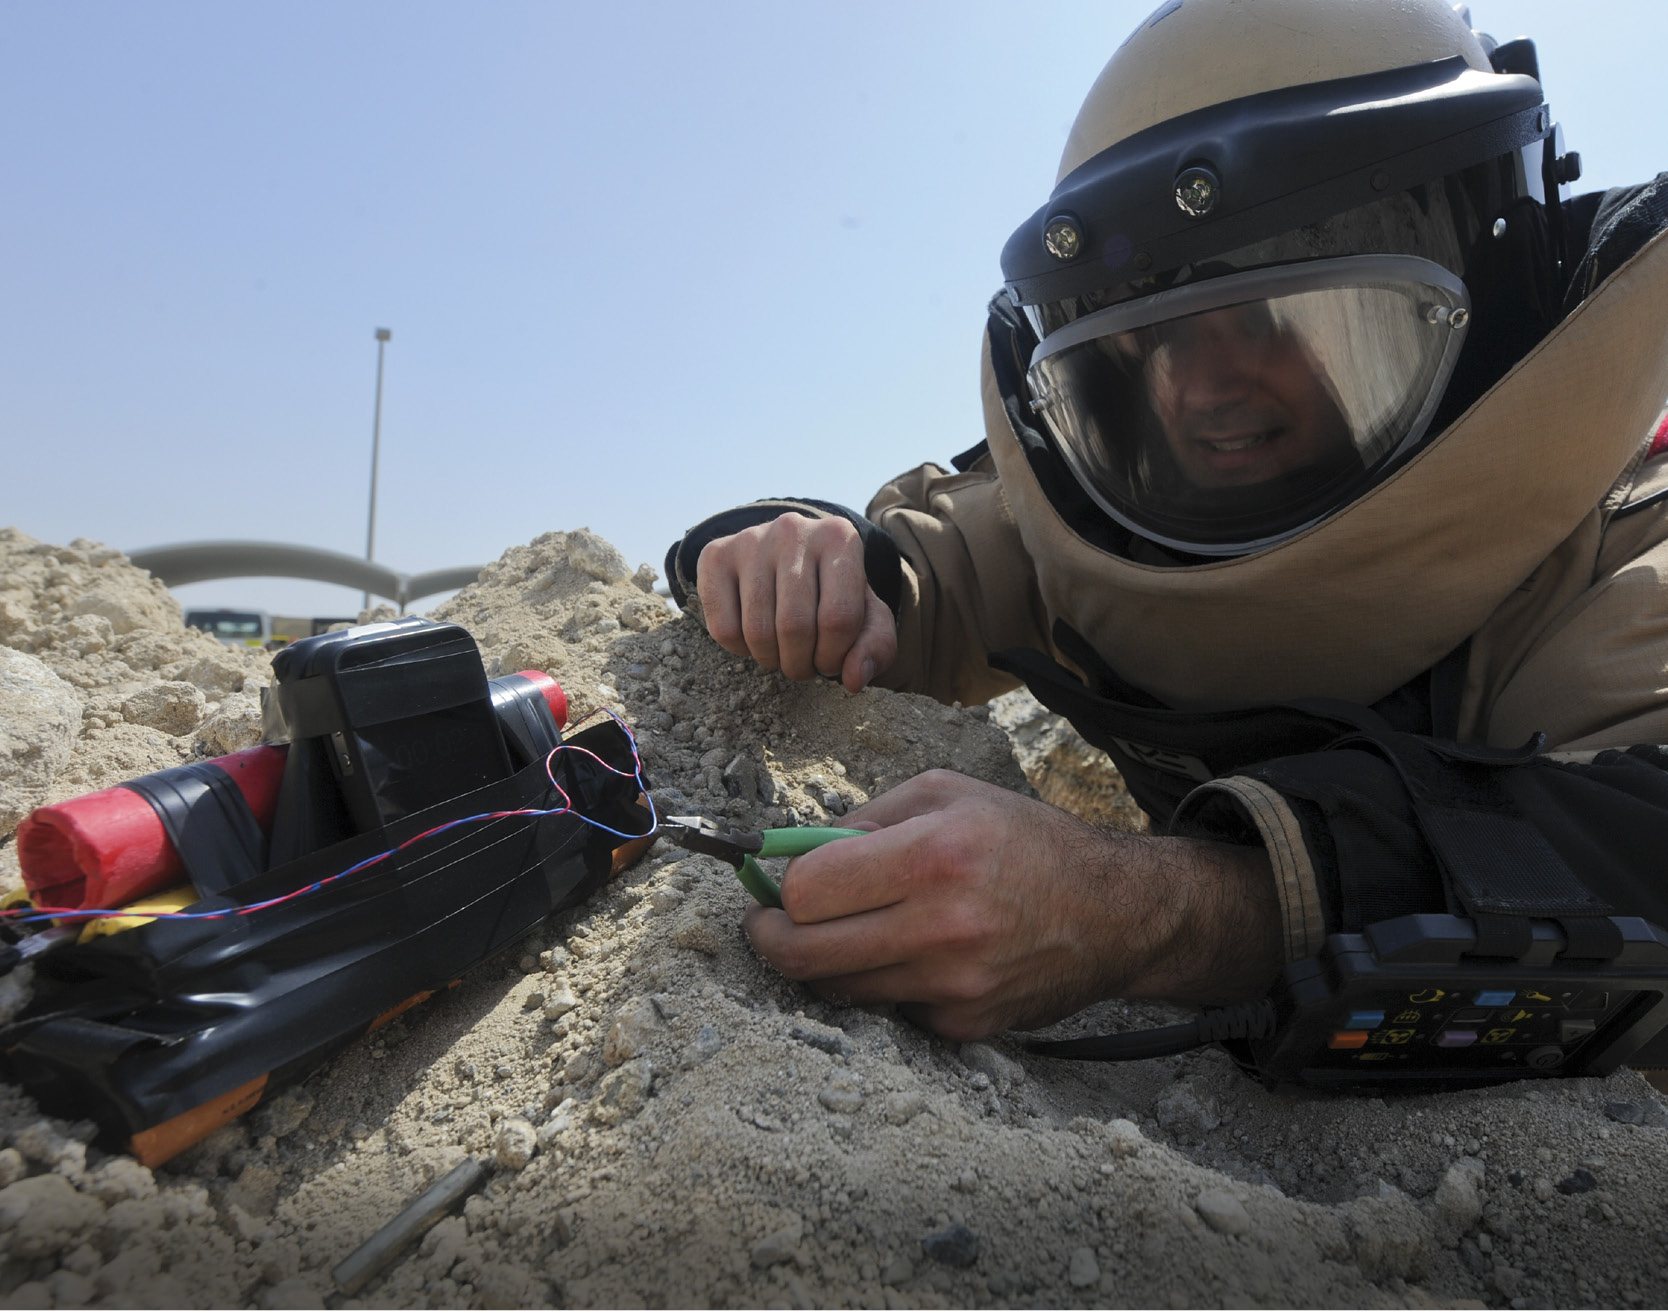 An explosive ordnance disposal worker diffuses a bomb